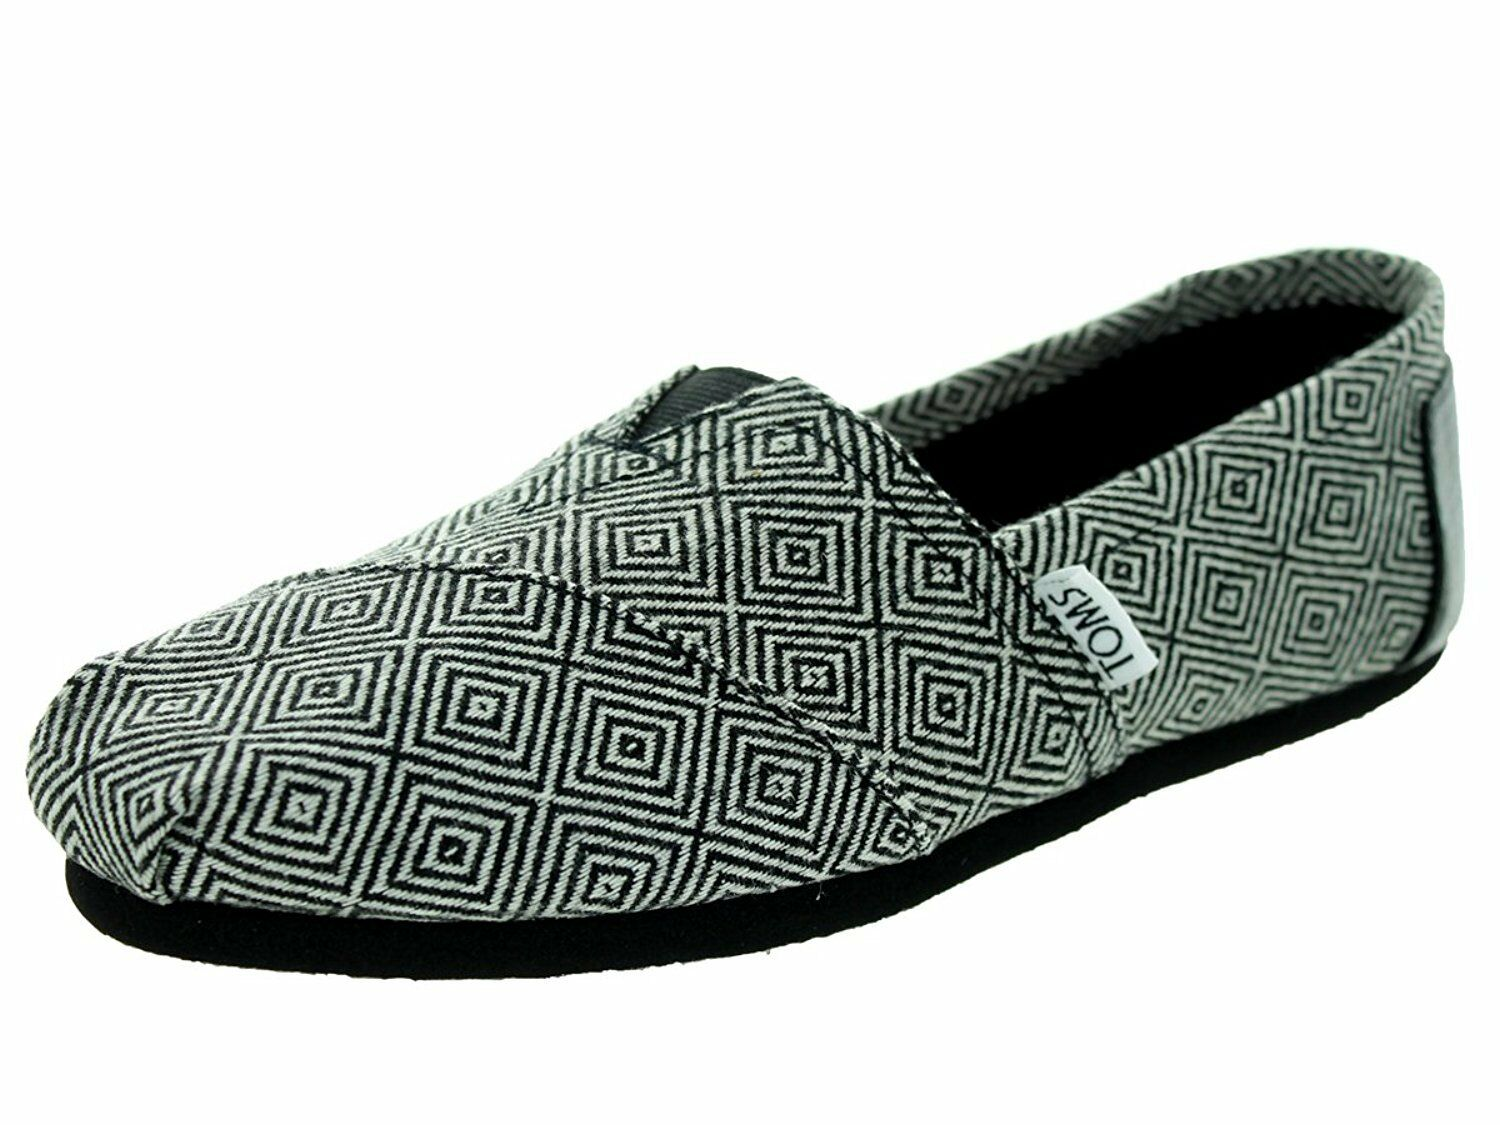 TOMS Women's CLASSIC Canvas Slip on Casual flats shoe's New Authentic NWB